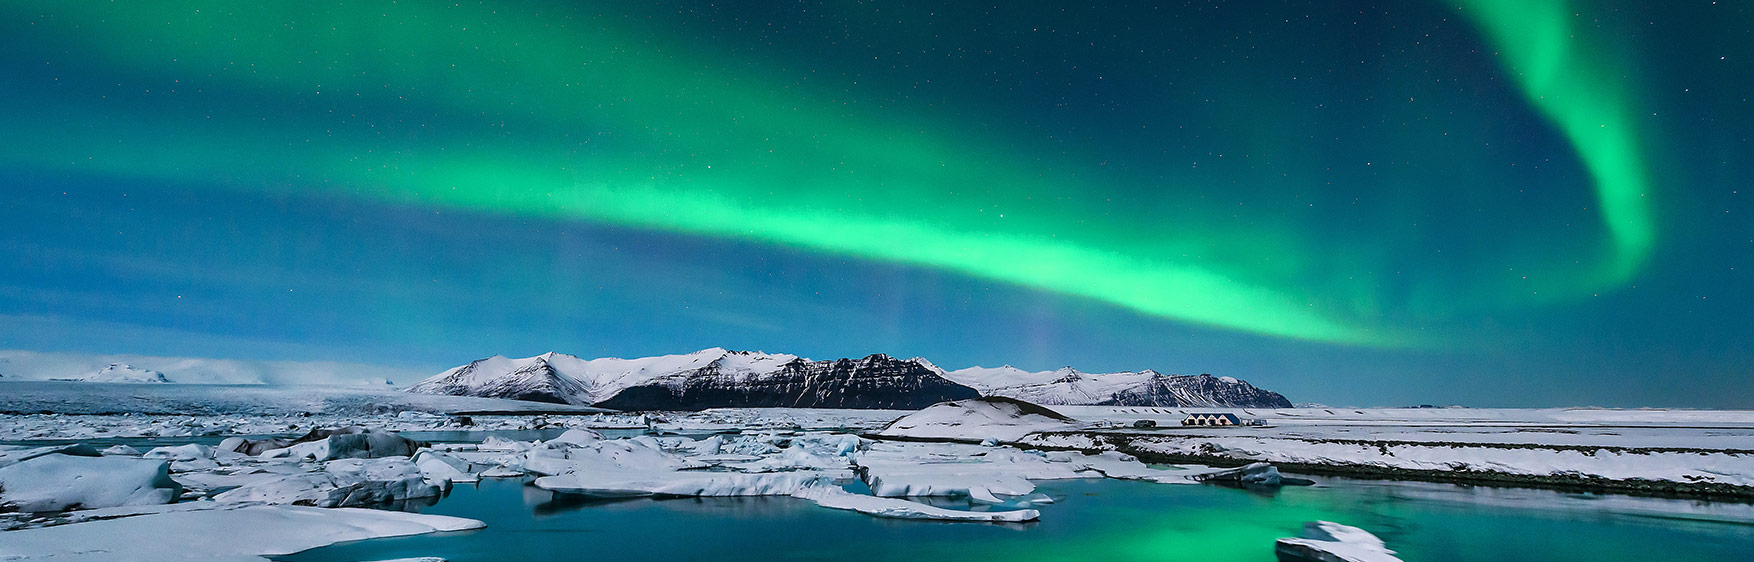 http://cdn.icelandair.com/servlet/file/store36/item800114/version1/nothern-lights-Icelandair.jpg